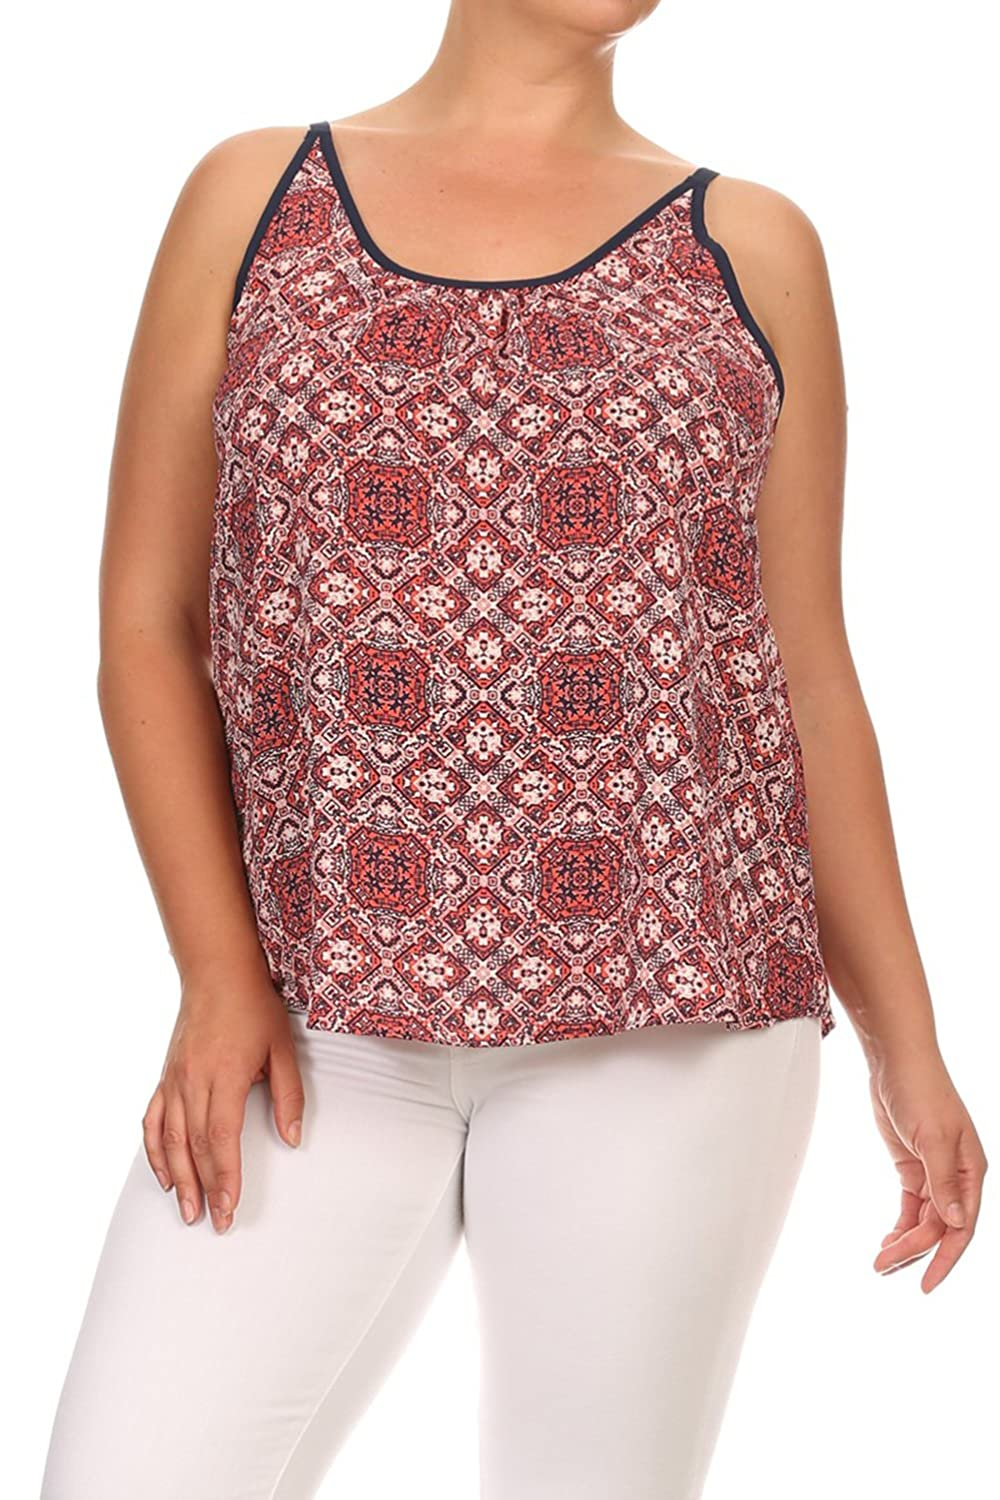 Vialumi Women's Junior Plus Damask Printed Sleeveless Cami Top Berry Red